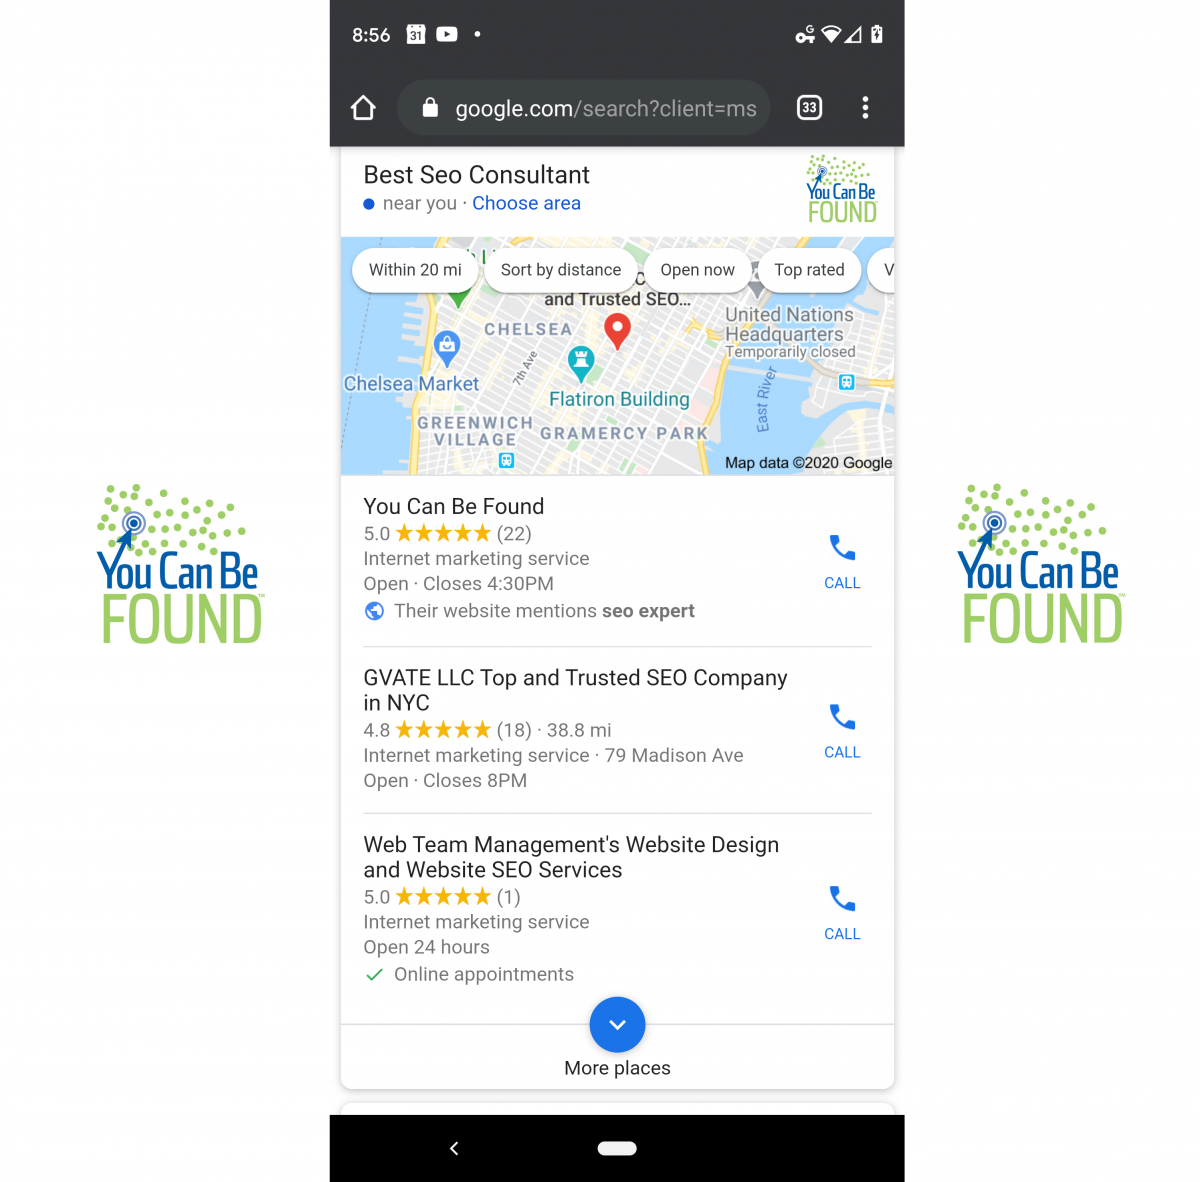 Google My Business: GMB SEO Consultant